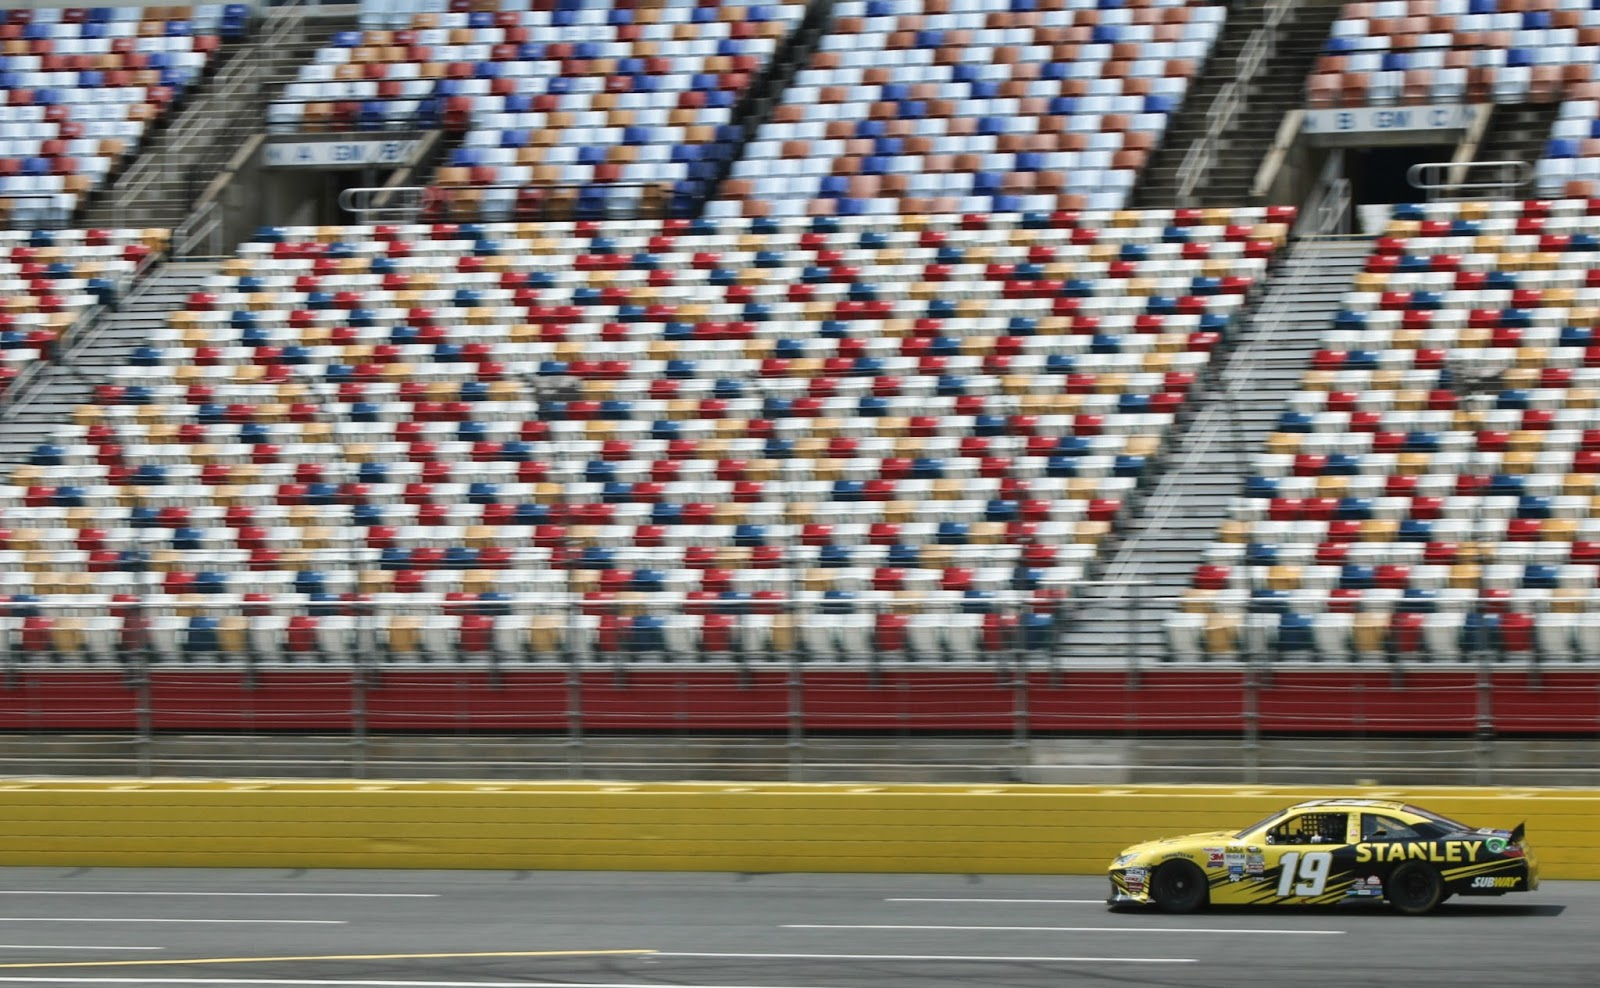 Charlotte motor speedway for Camping at charlotte motor speedway